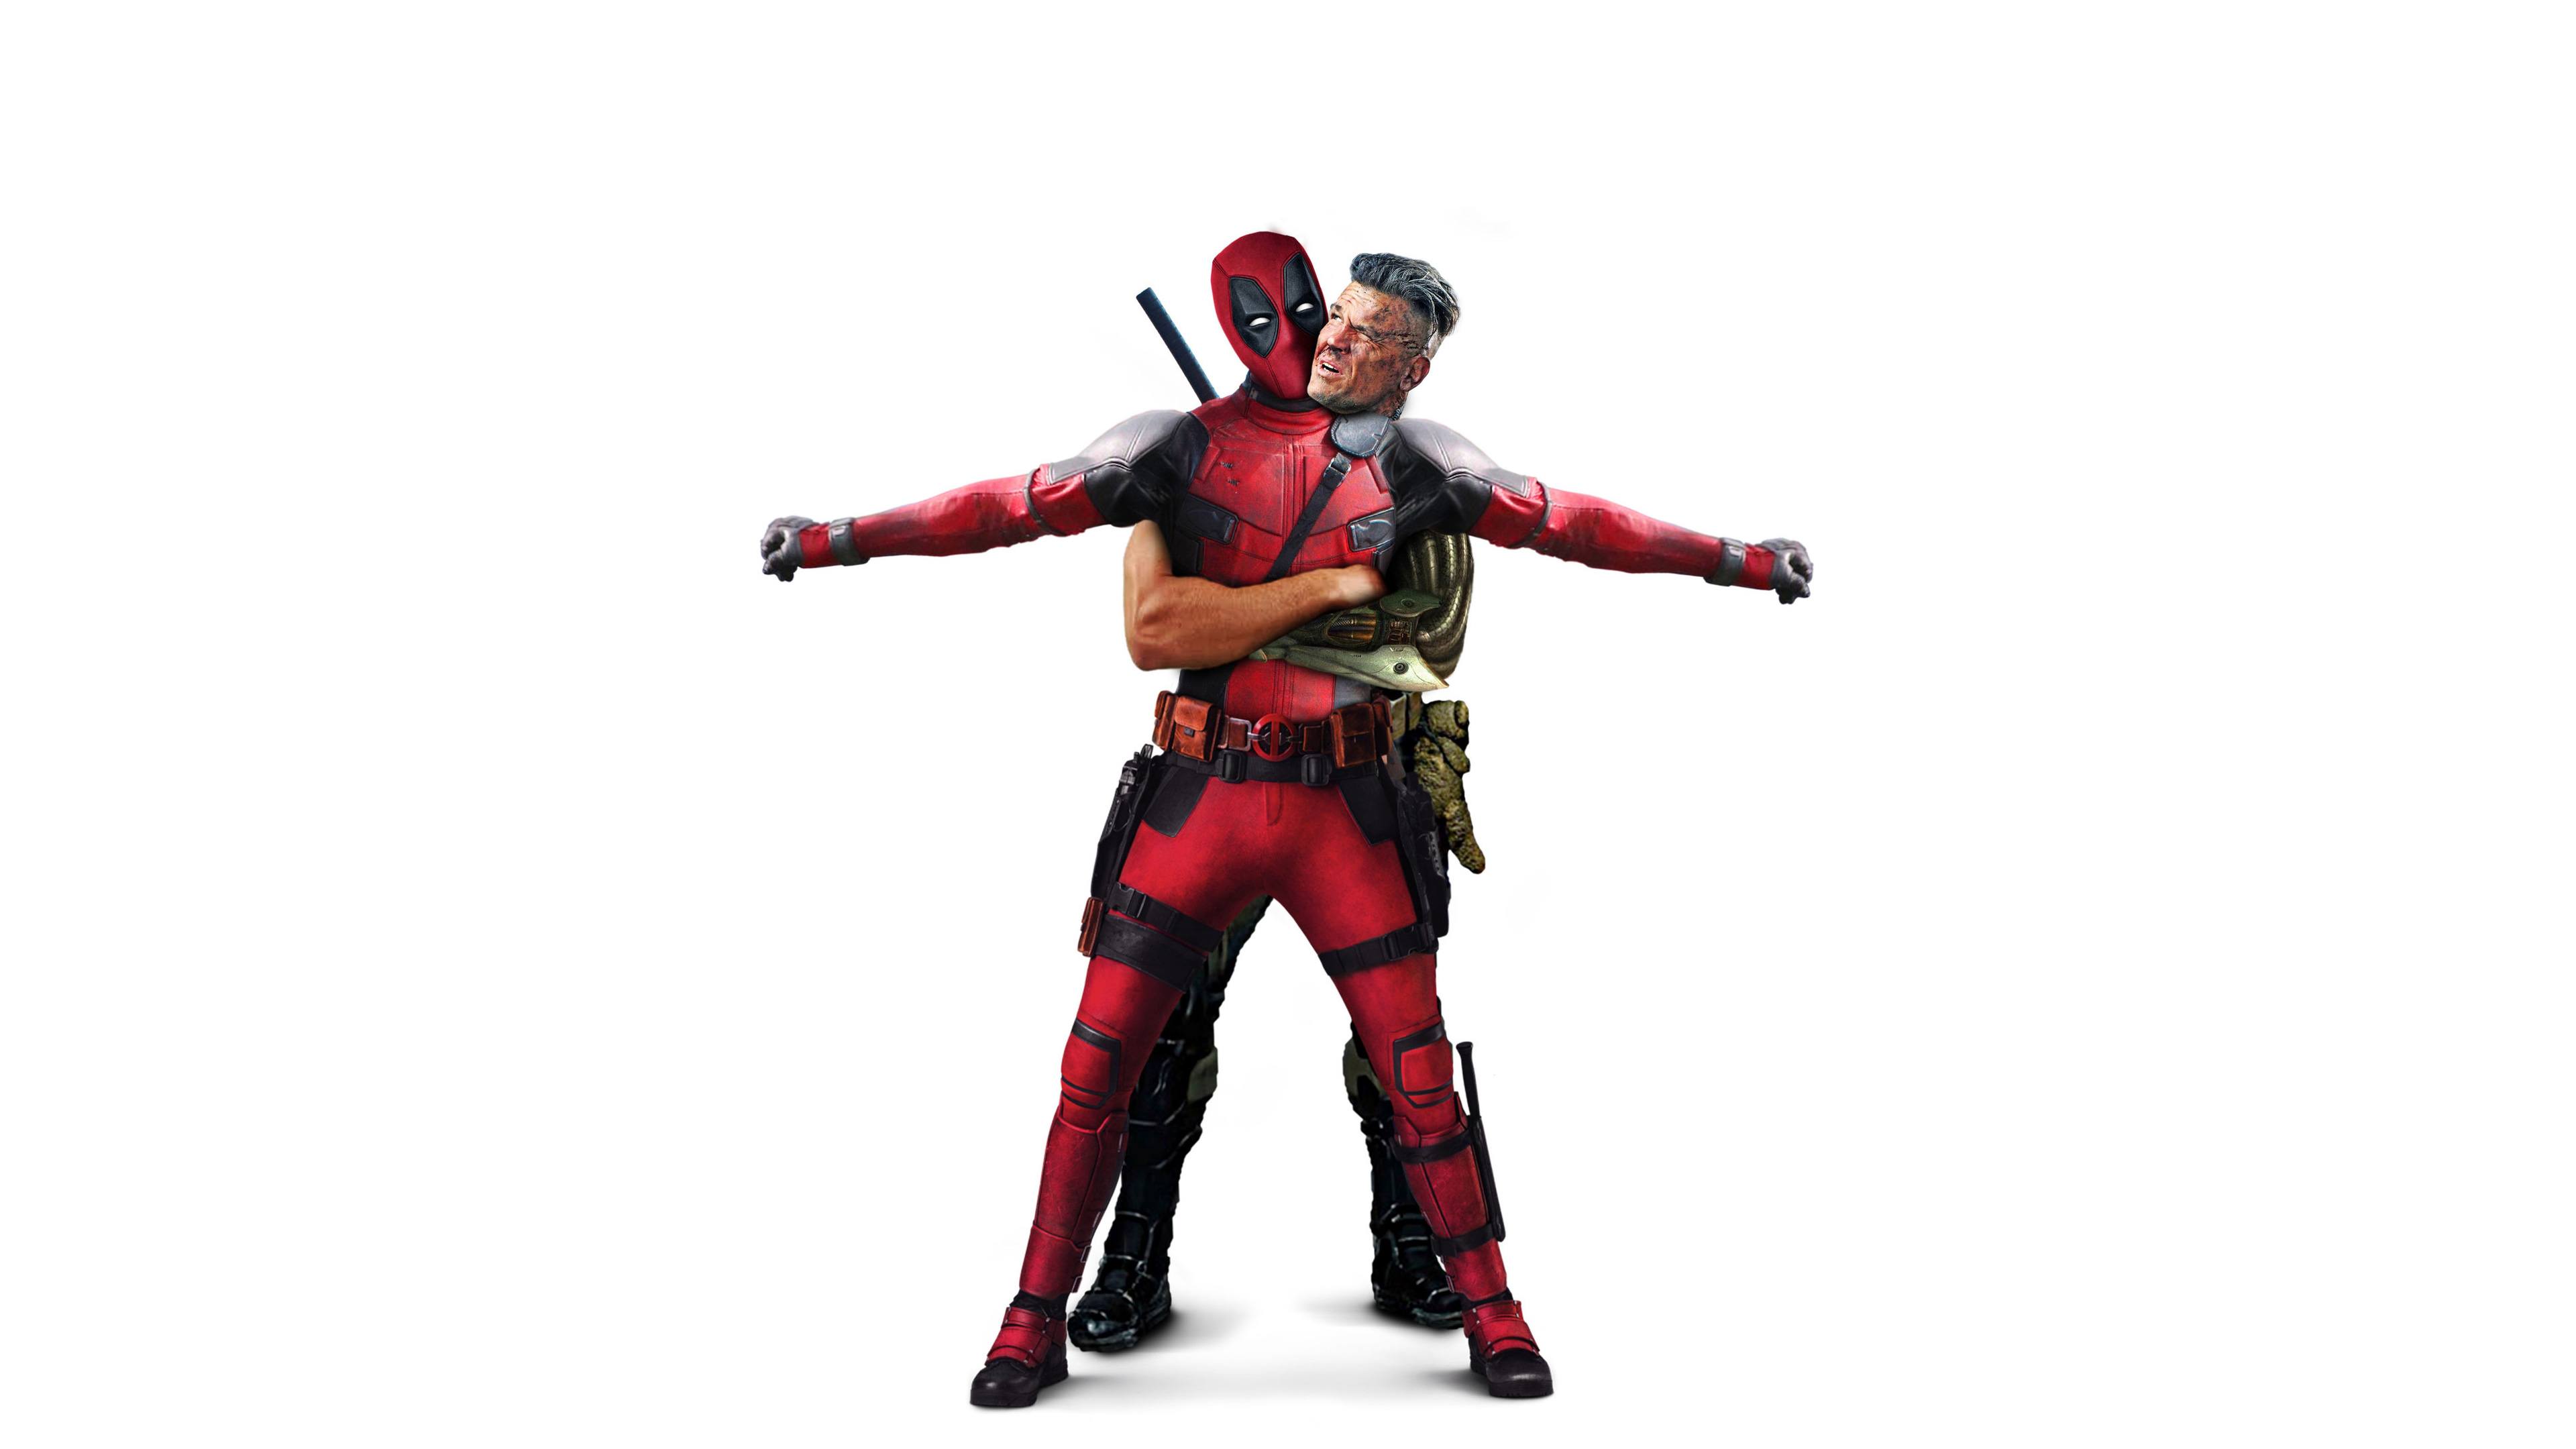 Wallpaper 4k Deadpool 2 Movie 4k 4k Wallpapers